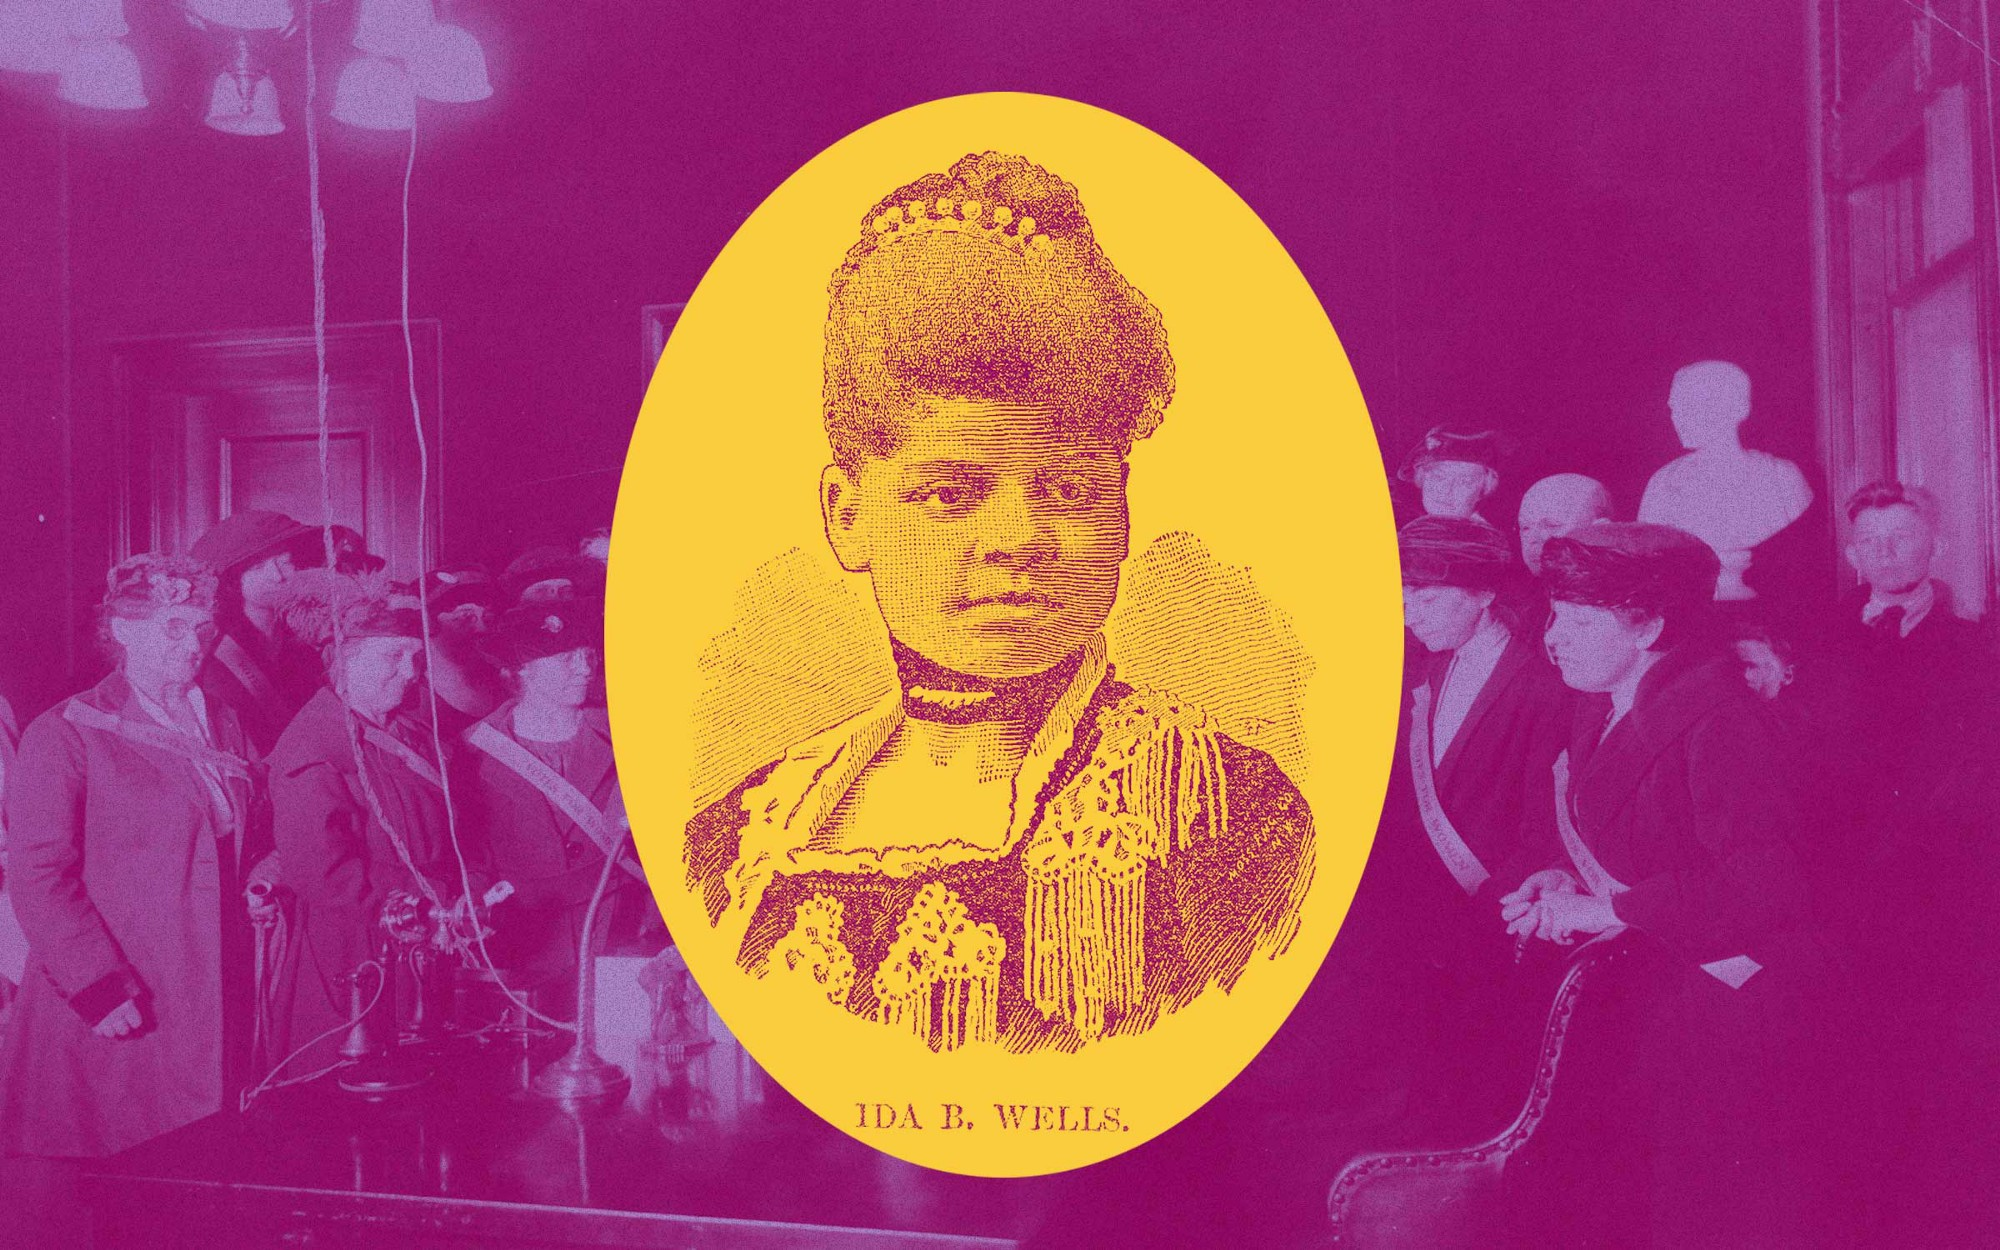 Photo illustration of a portrait of Ida B. Wells against a background image of women voters.